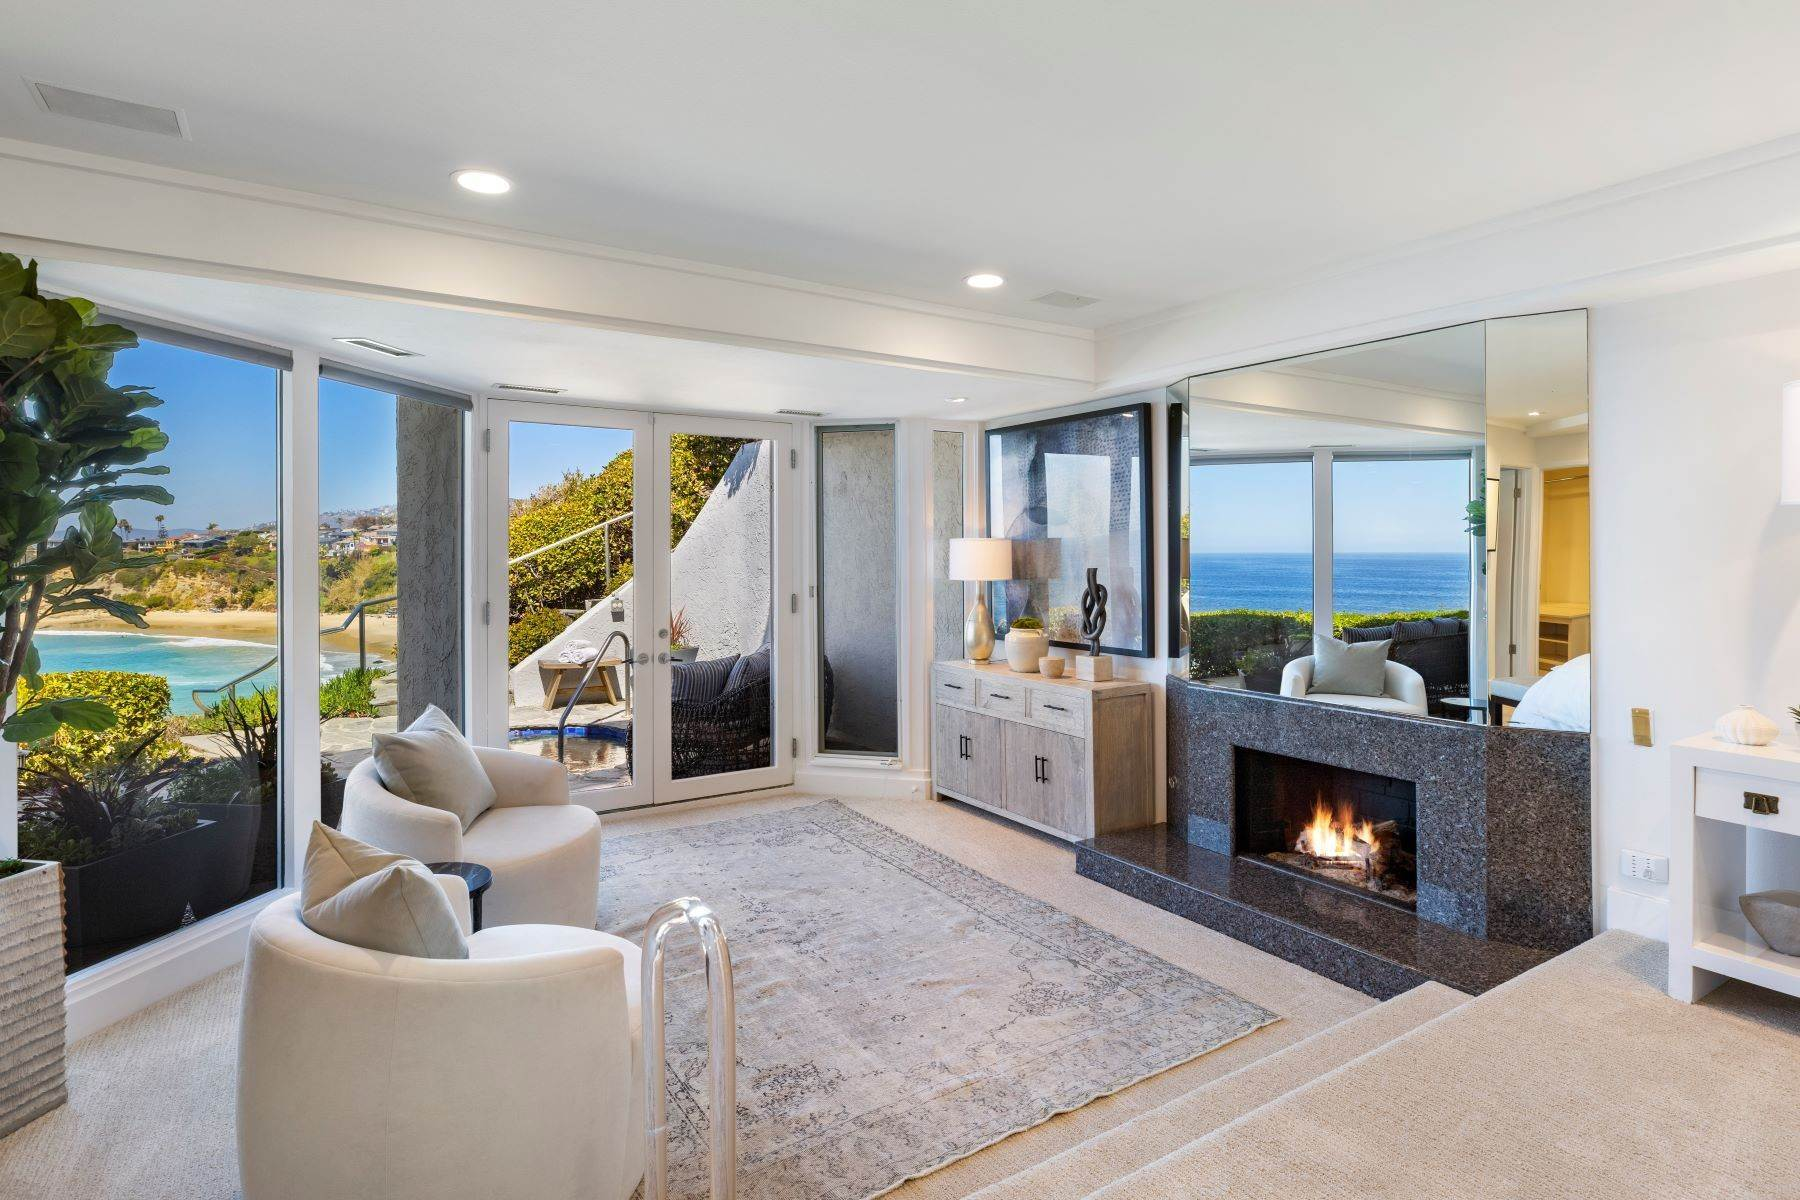 28. Single Family Homes for Sale at 112 South La Senda Drive, Laguna Beach, CA 92651 112 South La Senda Drive Laguna Beach, California 92651 United States